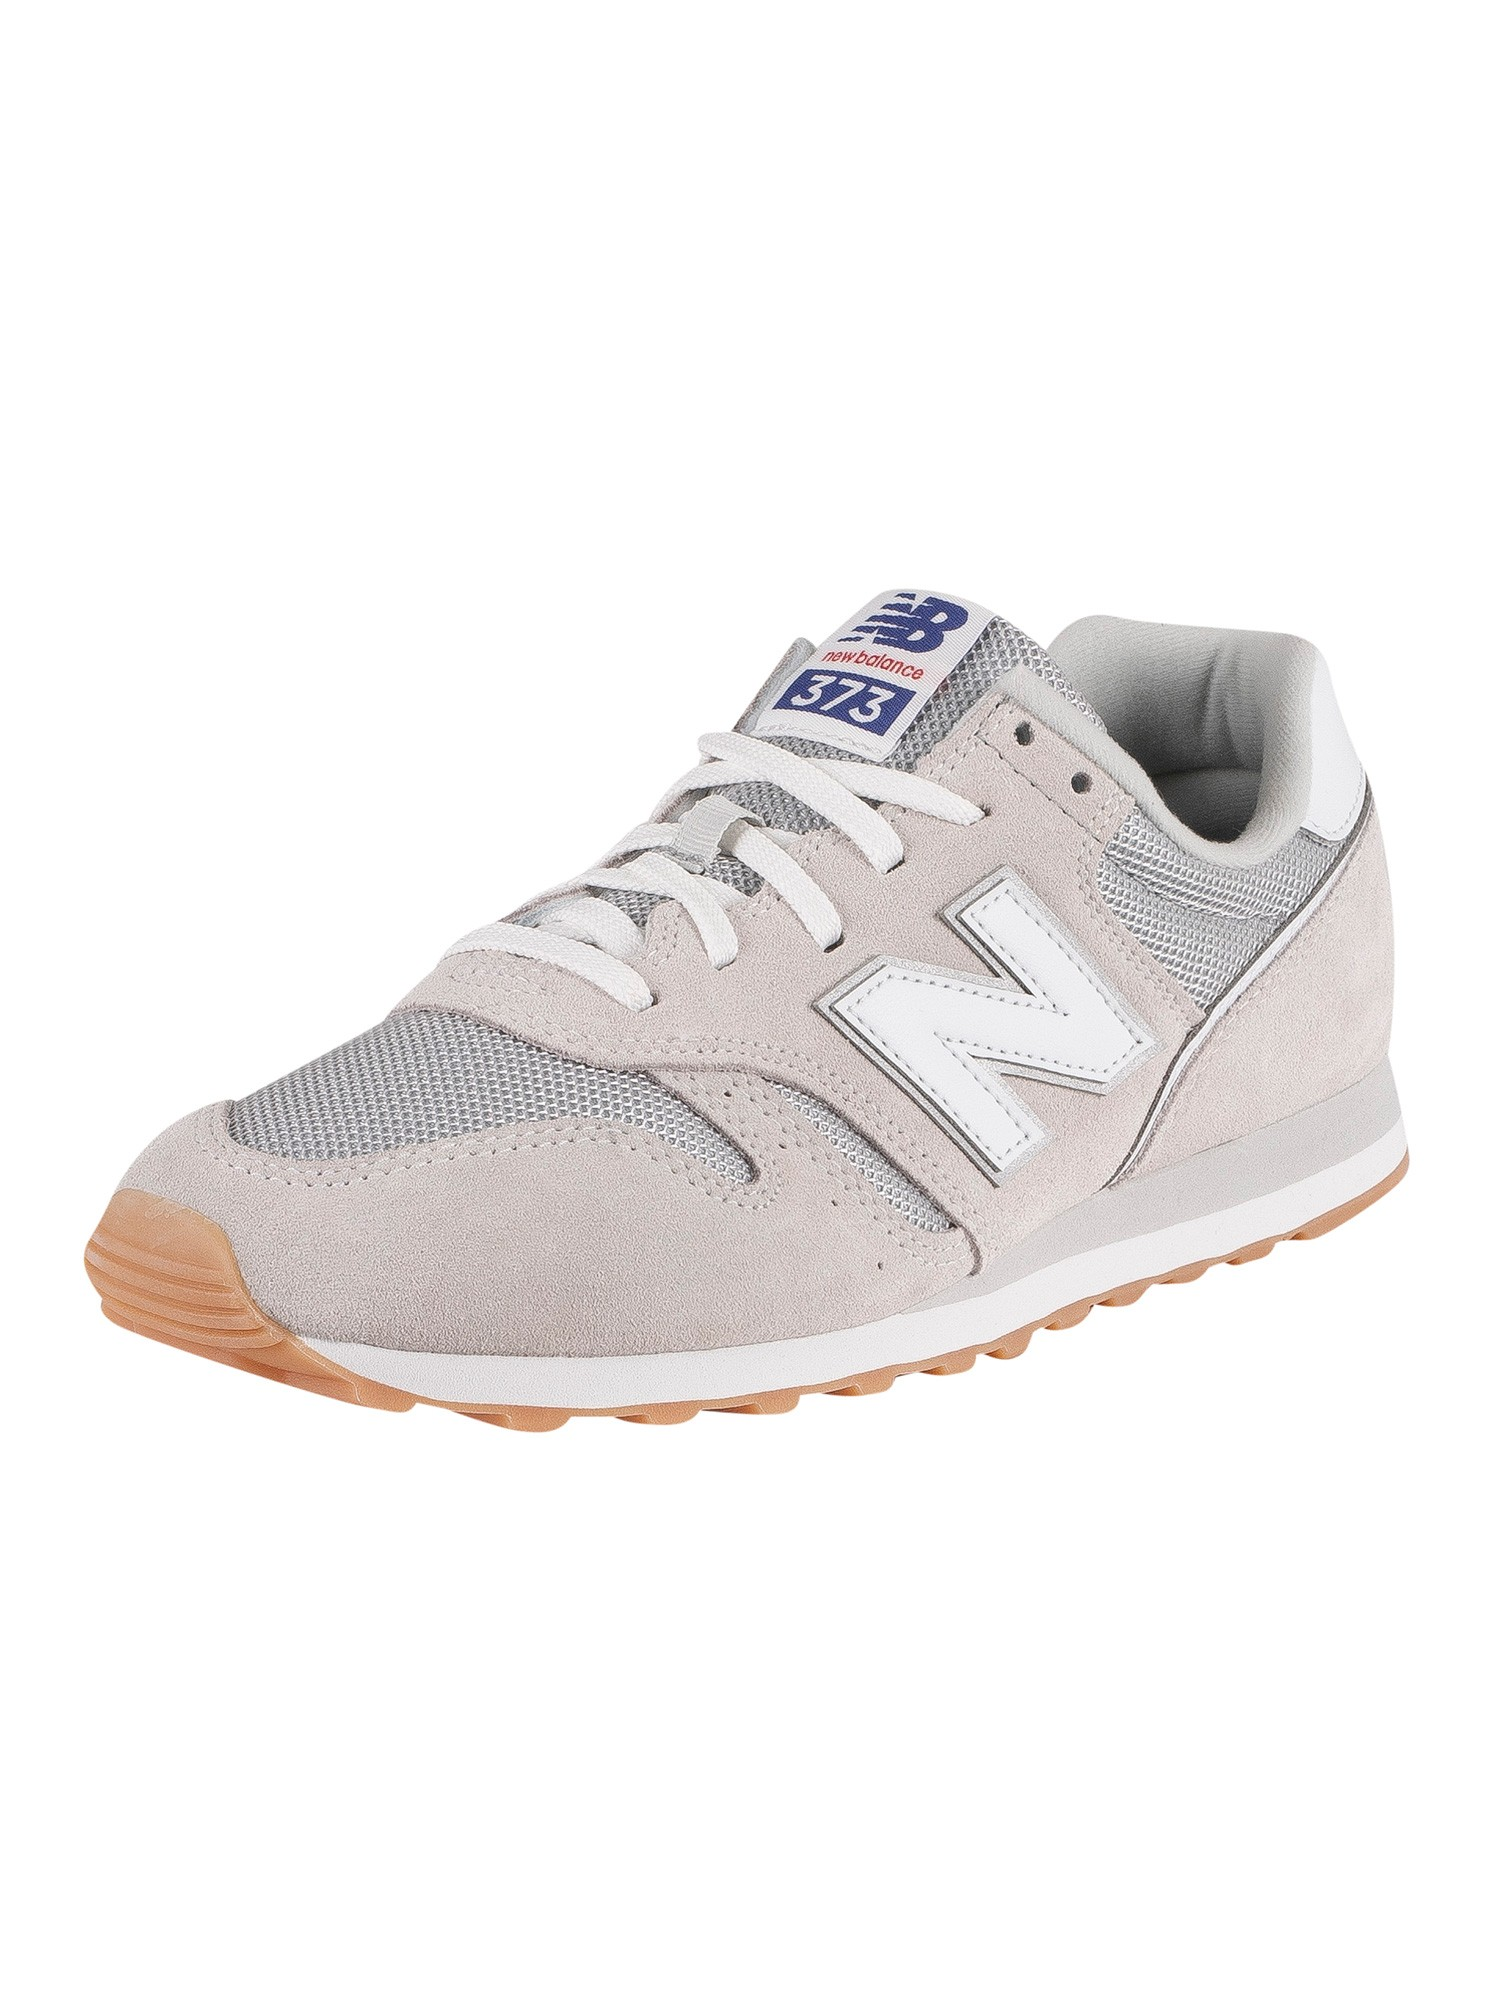 373 Suede Trainers, Grey